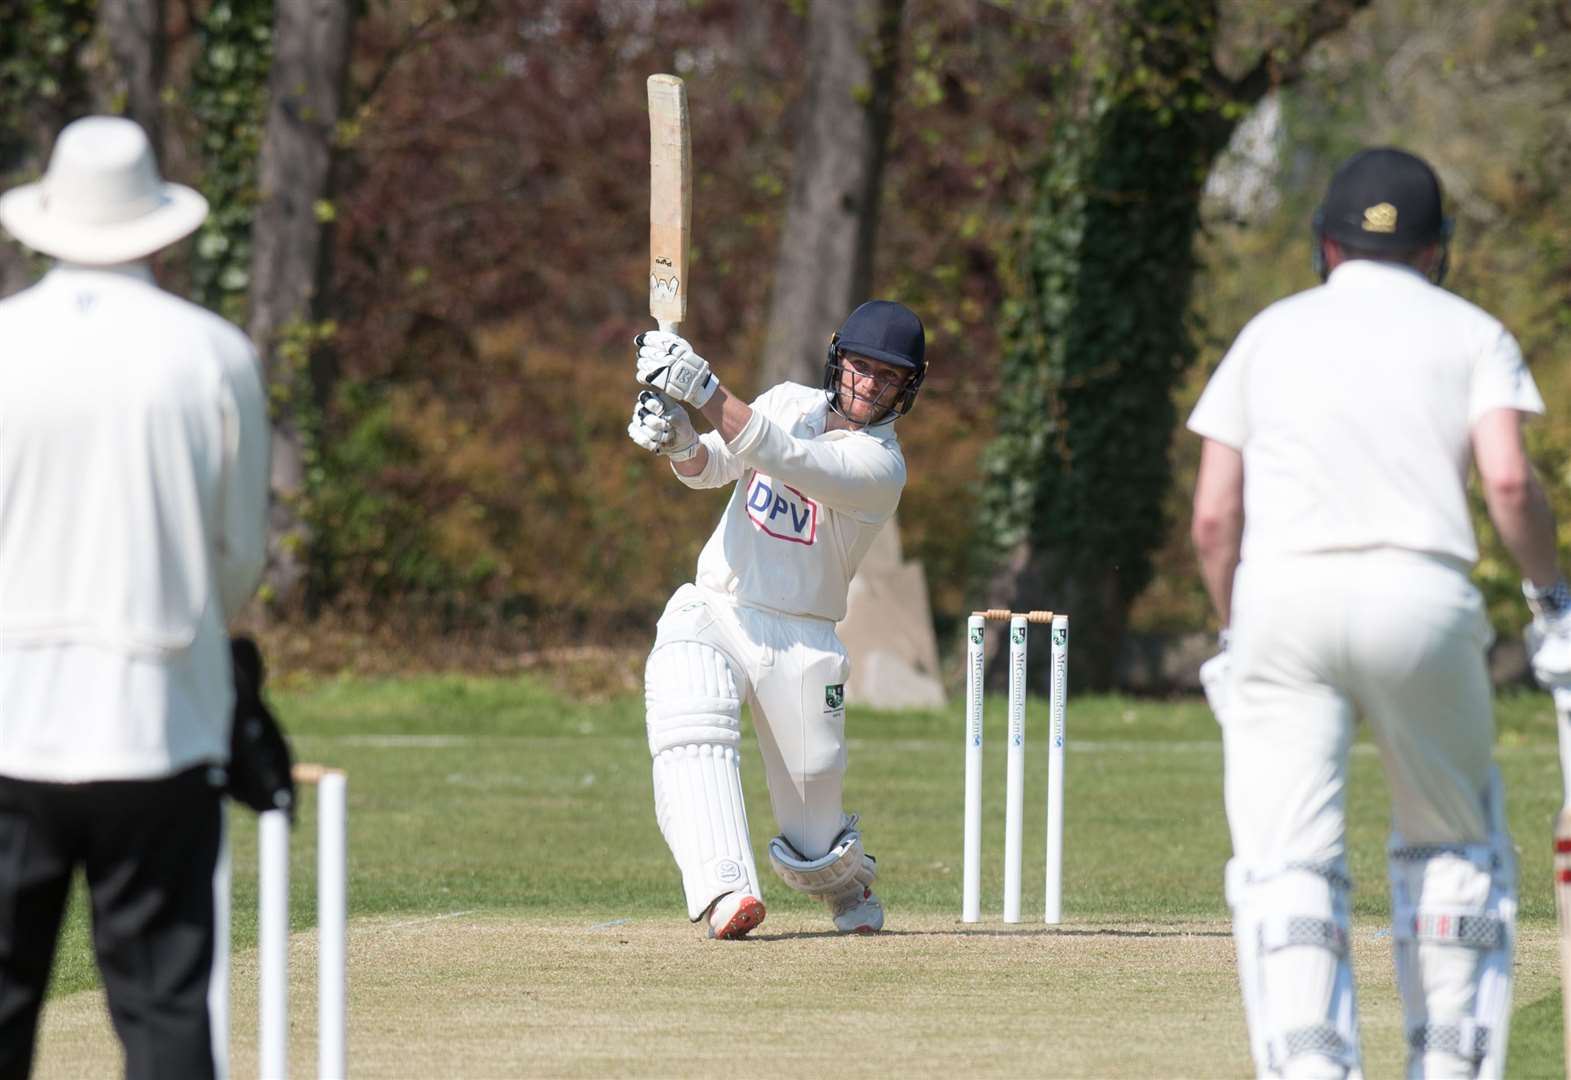 Cambridge and Burwell & Exning fall to defeats in East Anglian Premier League